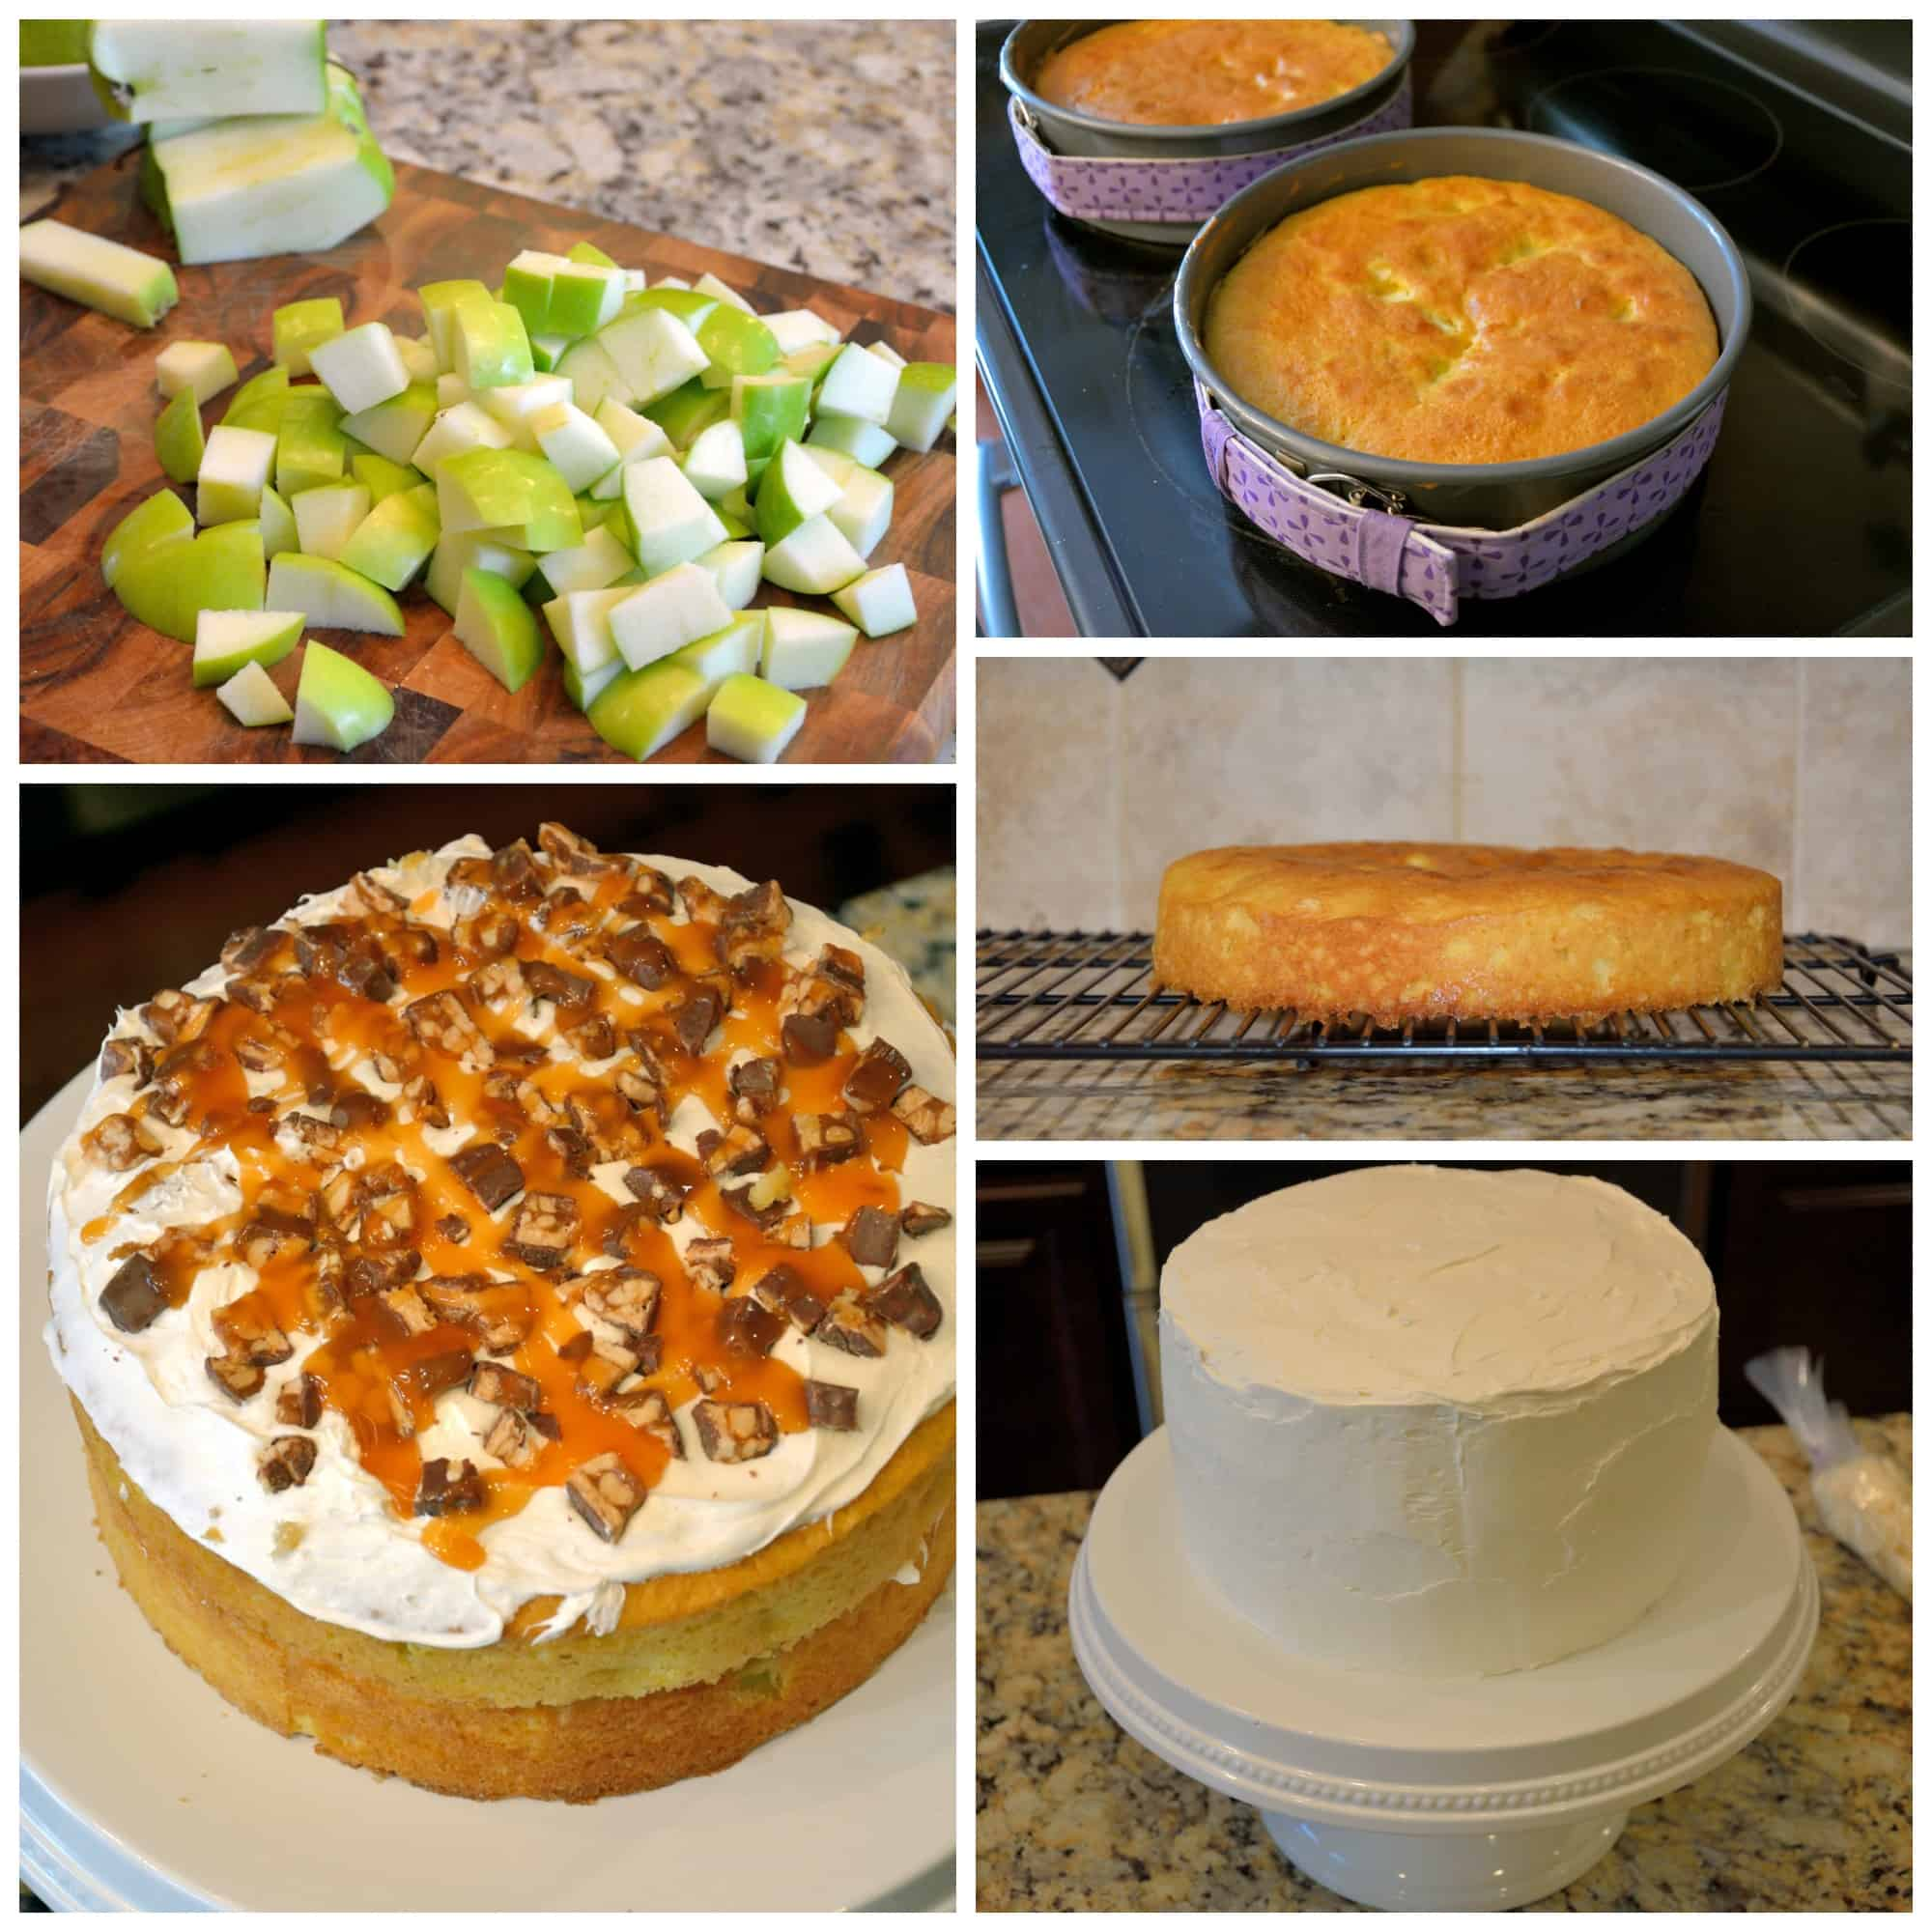 Caramel Apple Cake with SNICKERS® is a three layer yellow cake with baked apples, frosting, caramel, white and milk chocolate, and lots of SNICKERS®. #caramelapple #cake #snickers www.savoryexperiments.com